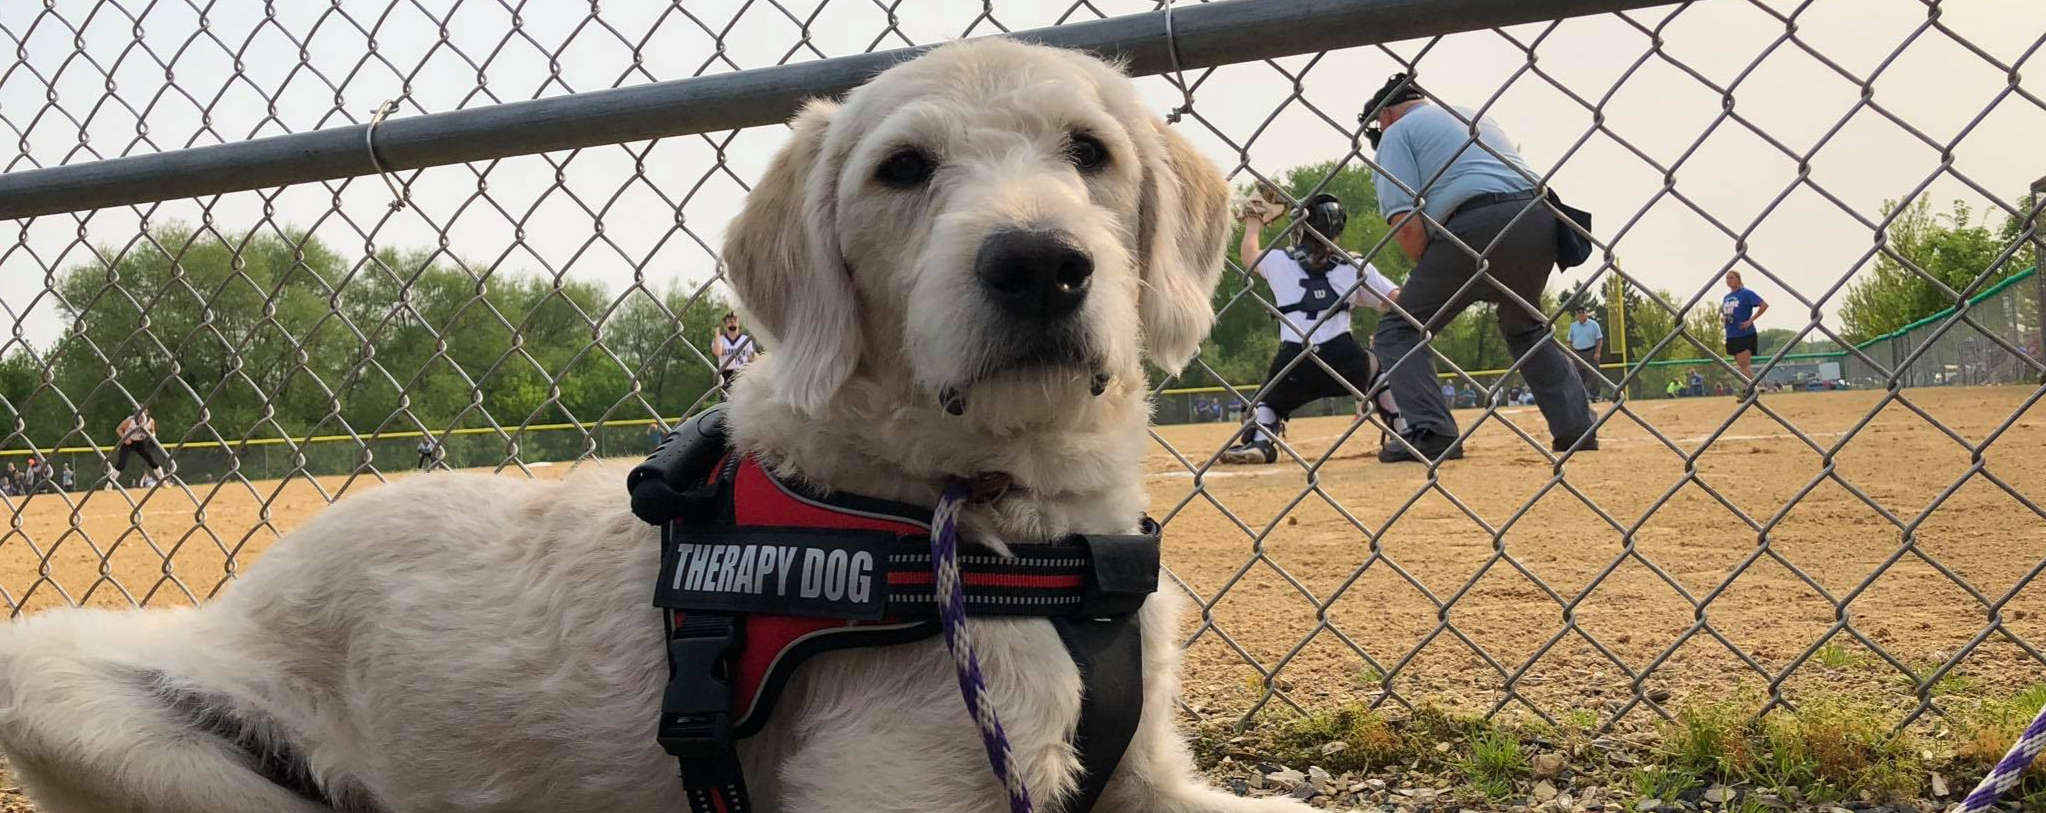 Frannie, the Therapy Dog, lays outside at a ball field